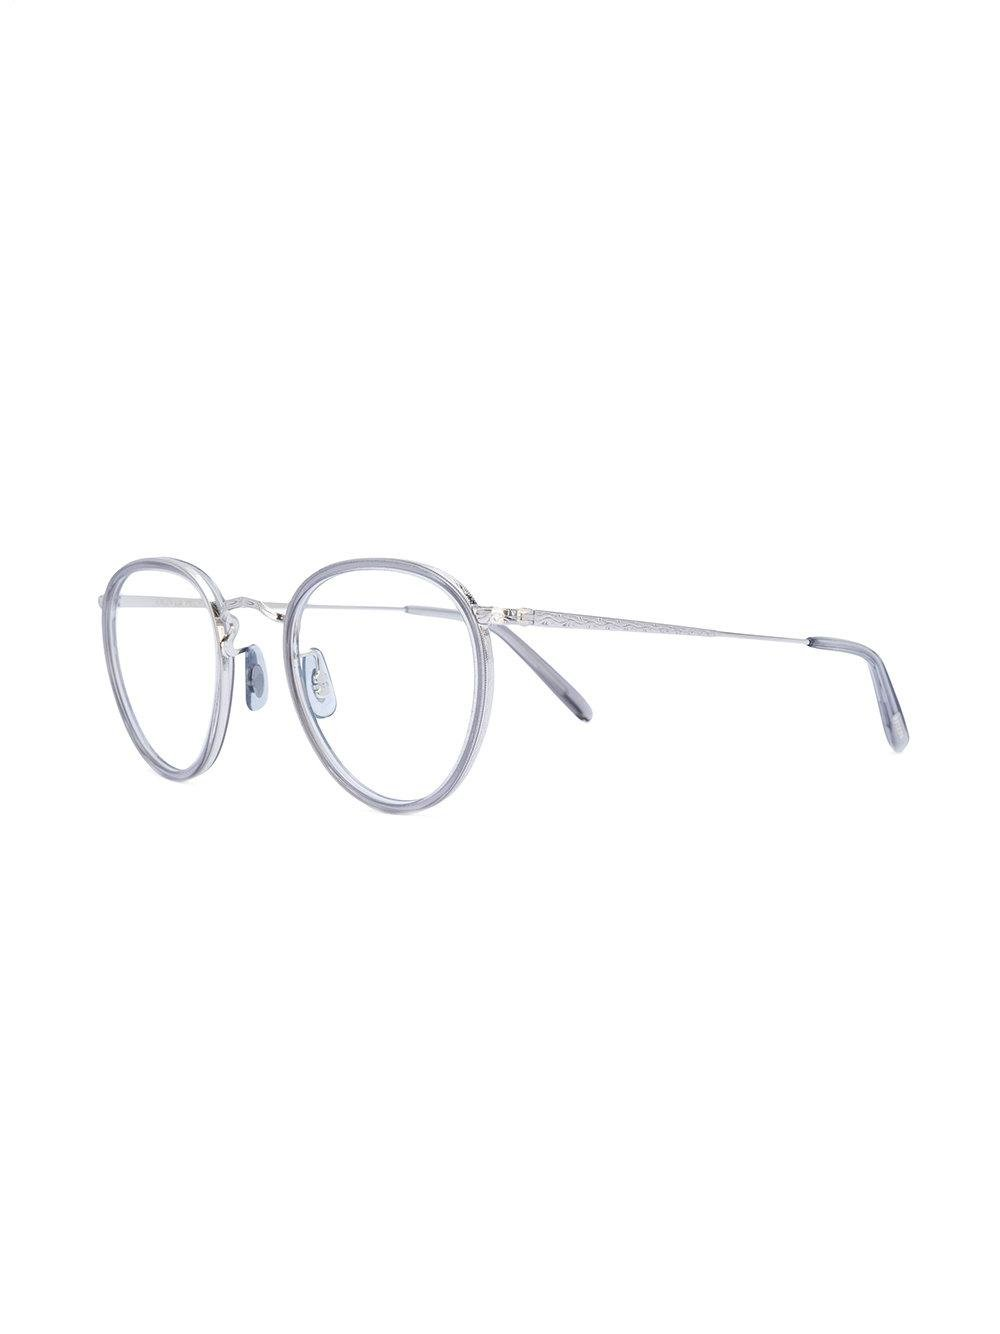 6d00c93fffb Oliver Peoples - Gray Round Frame Glasses - Lyst. View fullscreen